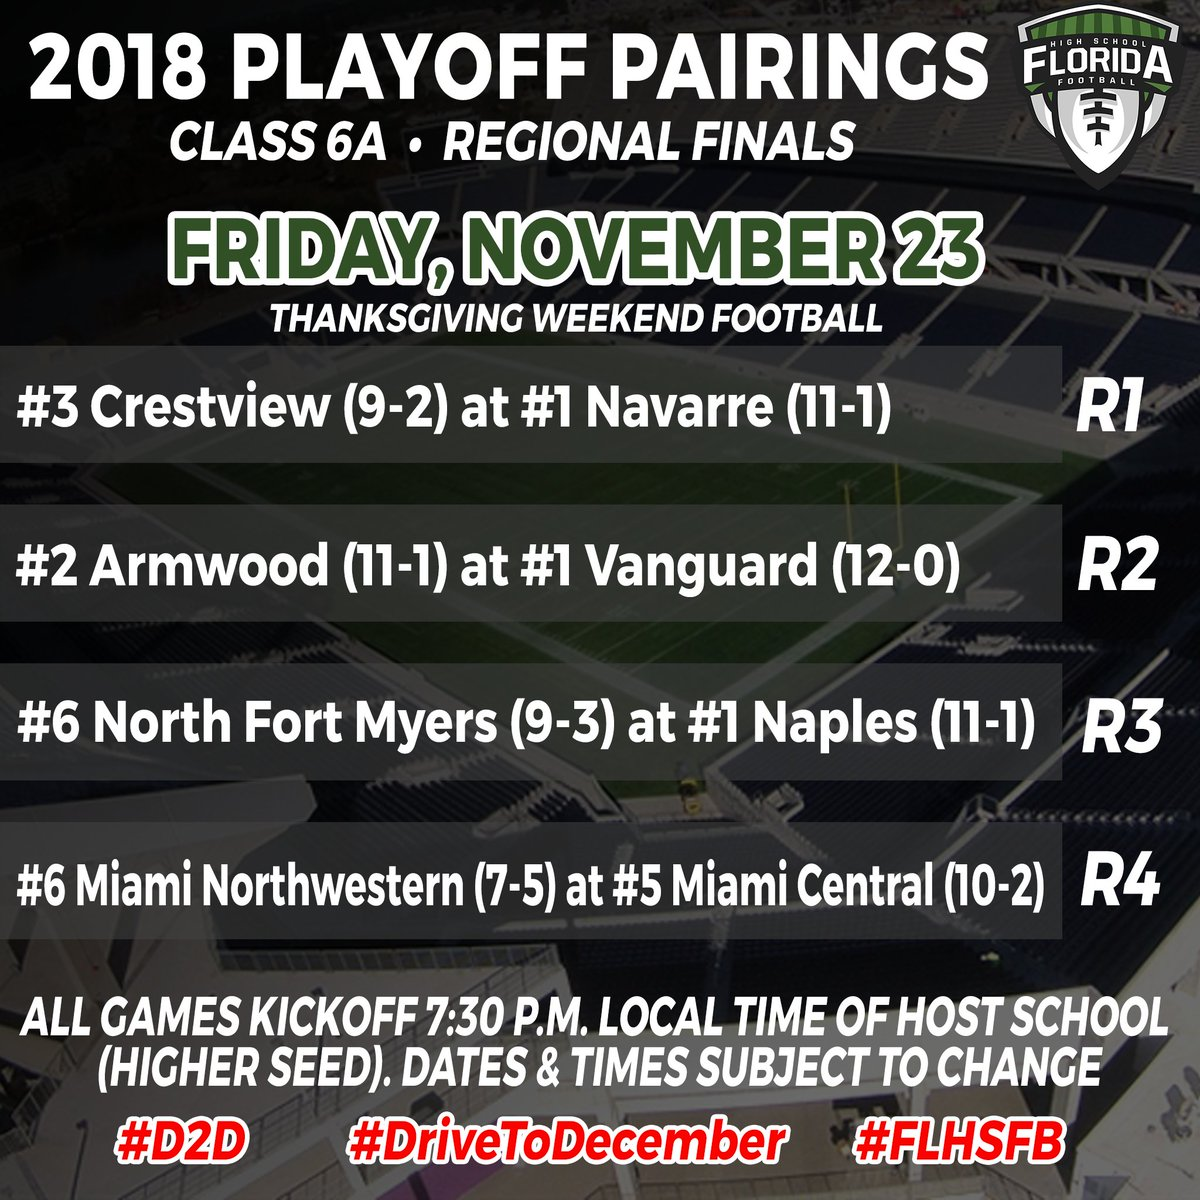 CLASS 6A REGIONAL FINAL PAIRINGS  R1: #3 Crestview (9-2) at #1 Navarre (11-1) R2: #2 Armwood (11-1) at #1 Vanguard (12-0) R3: #6 North Fort Myers (9-3) at #1 Naples (11-1)  R4: #6 Miami Northwestern (7-5) vs. #1 Miami Central (10-2)  #flhsfb   6A BRACKET: https://t.co/2MiPJazYH1